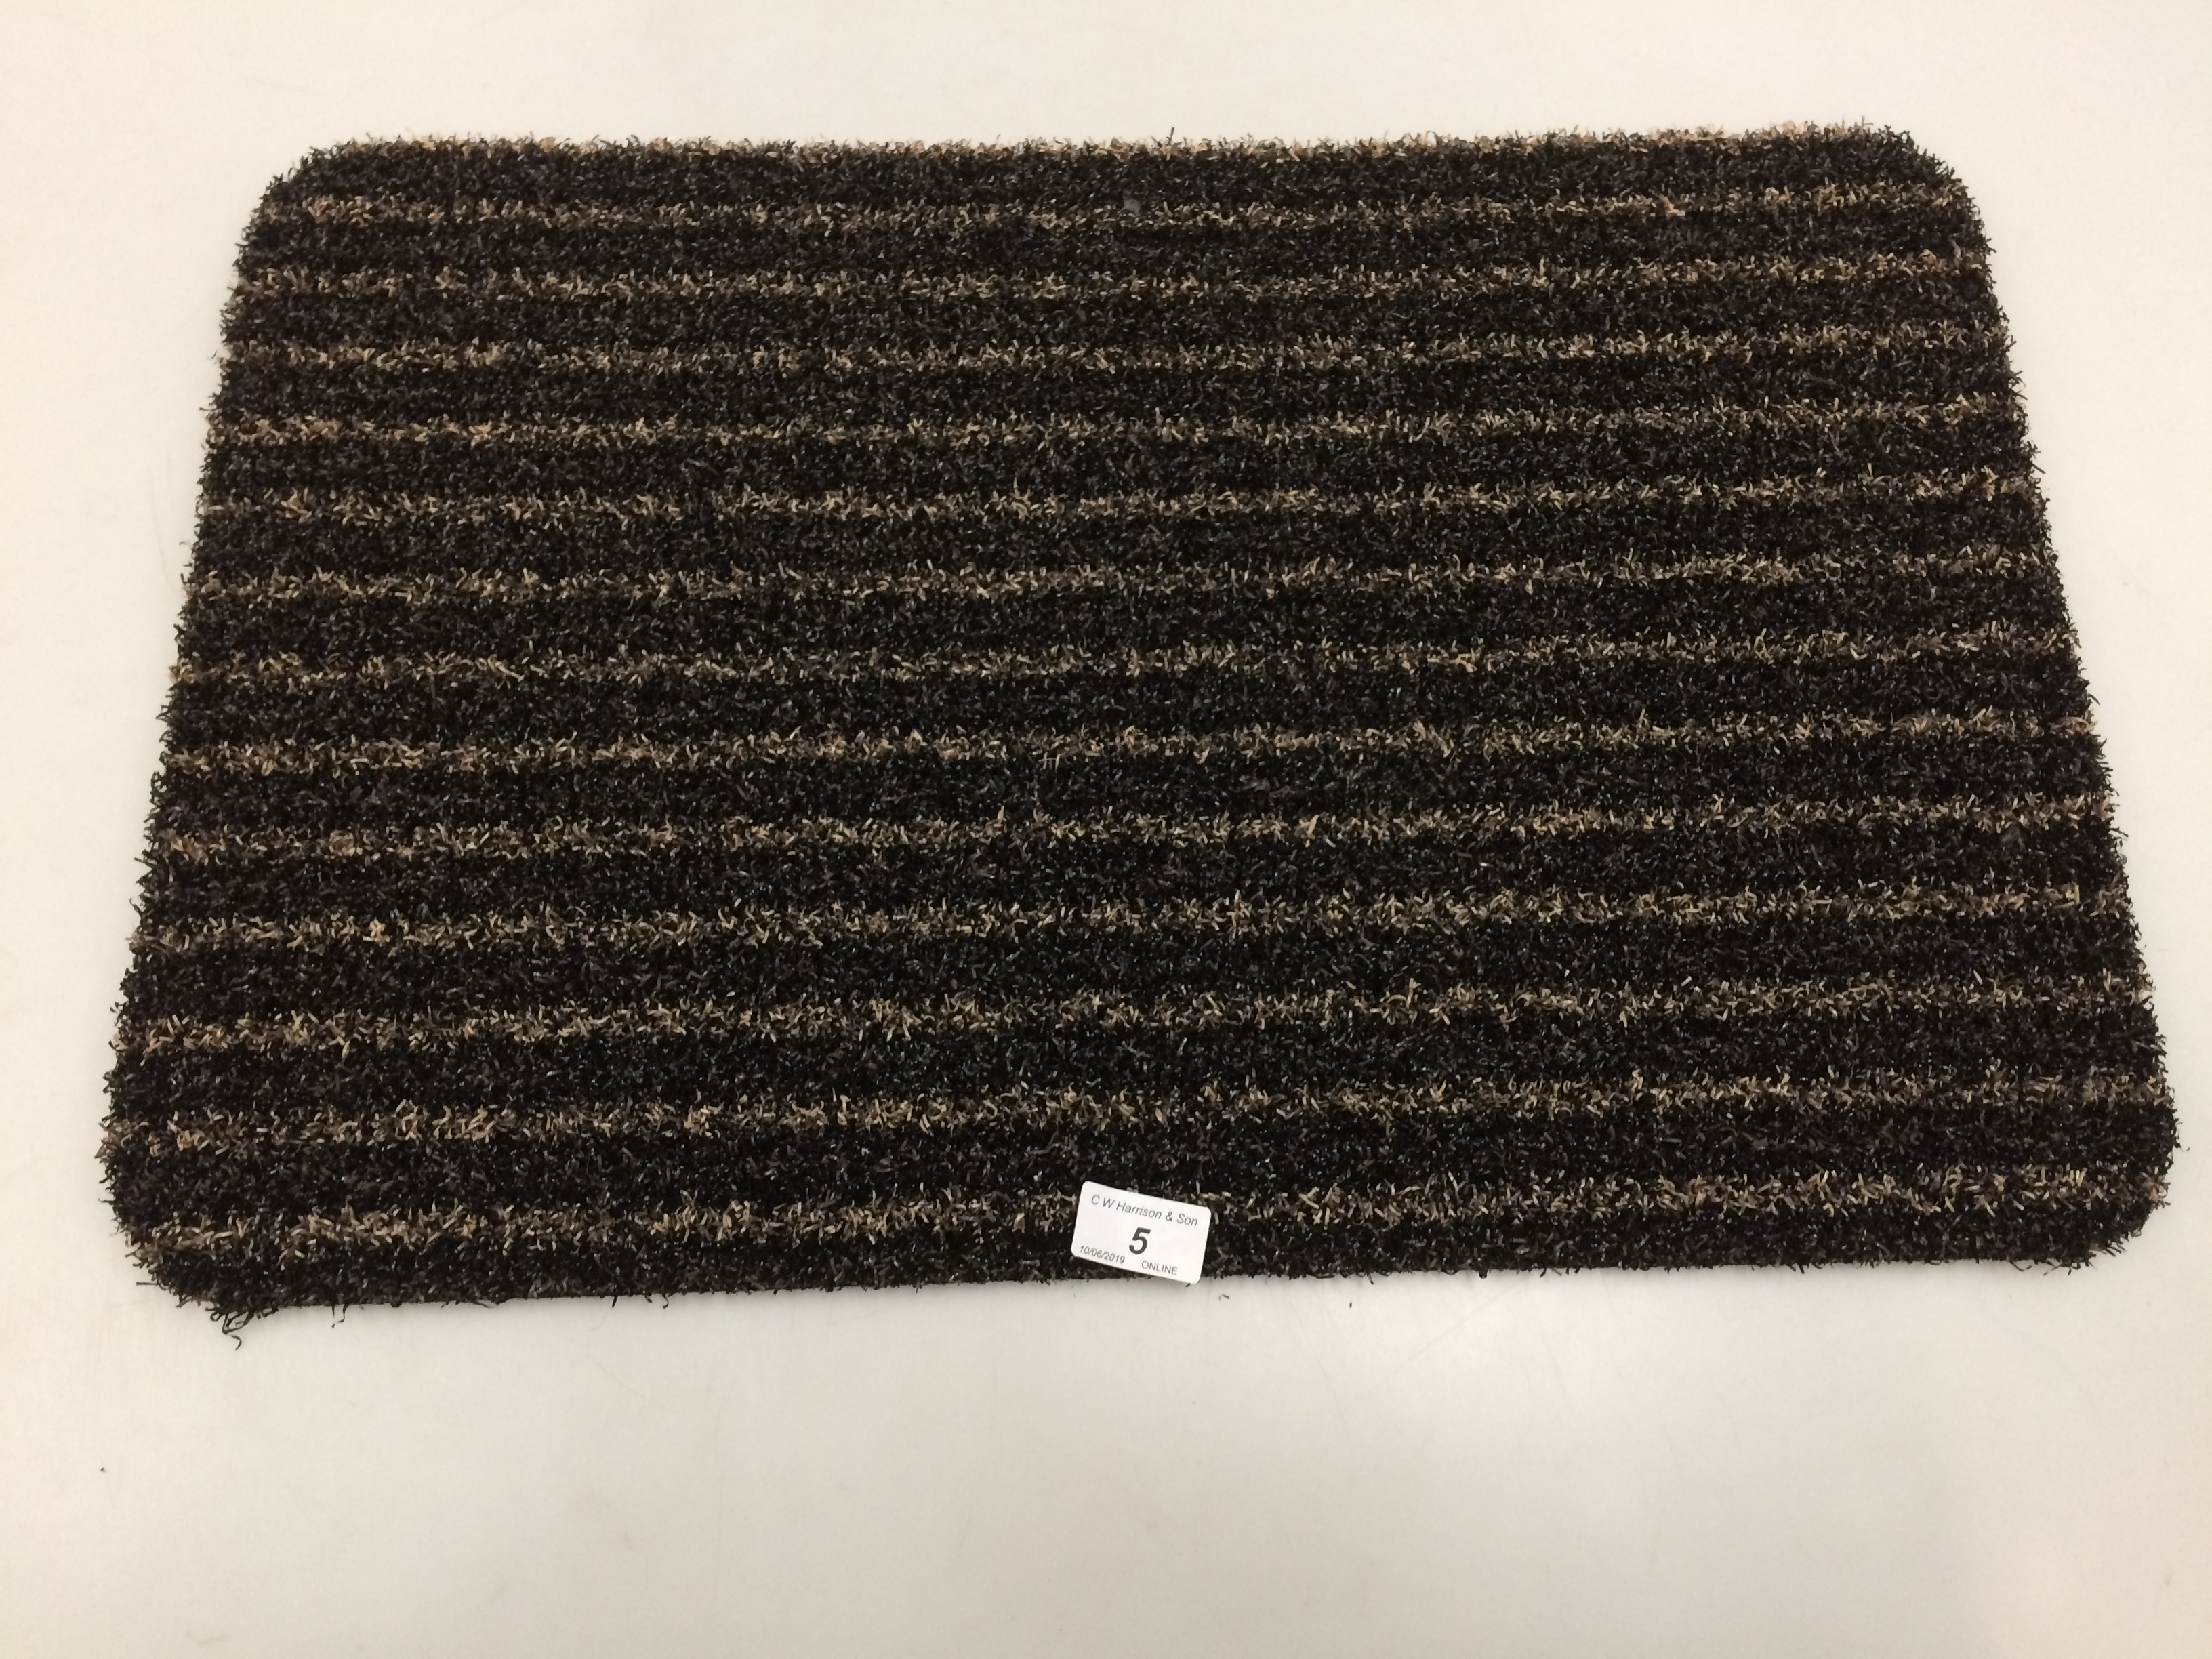 Lot 5 - 10 x black and gold striped door mats with rubber anti-slip inlay each 40 x 60cm